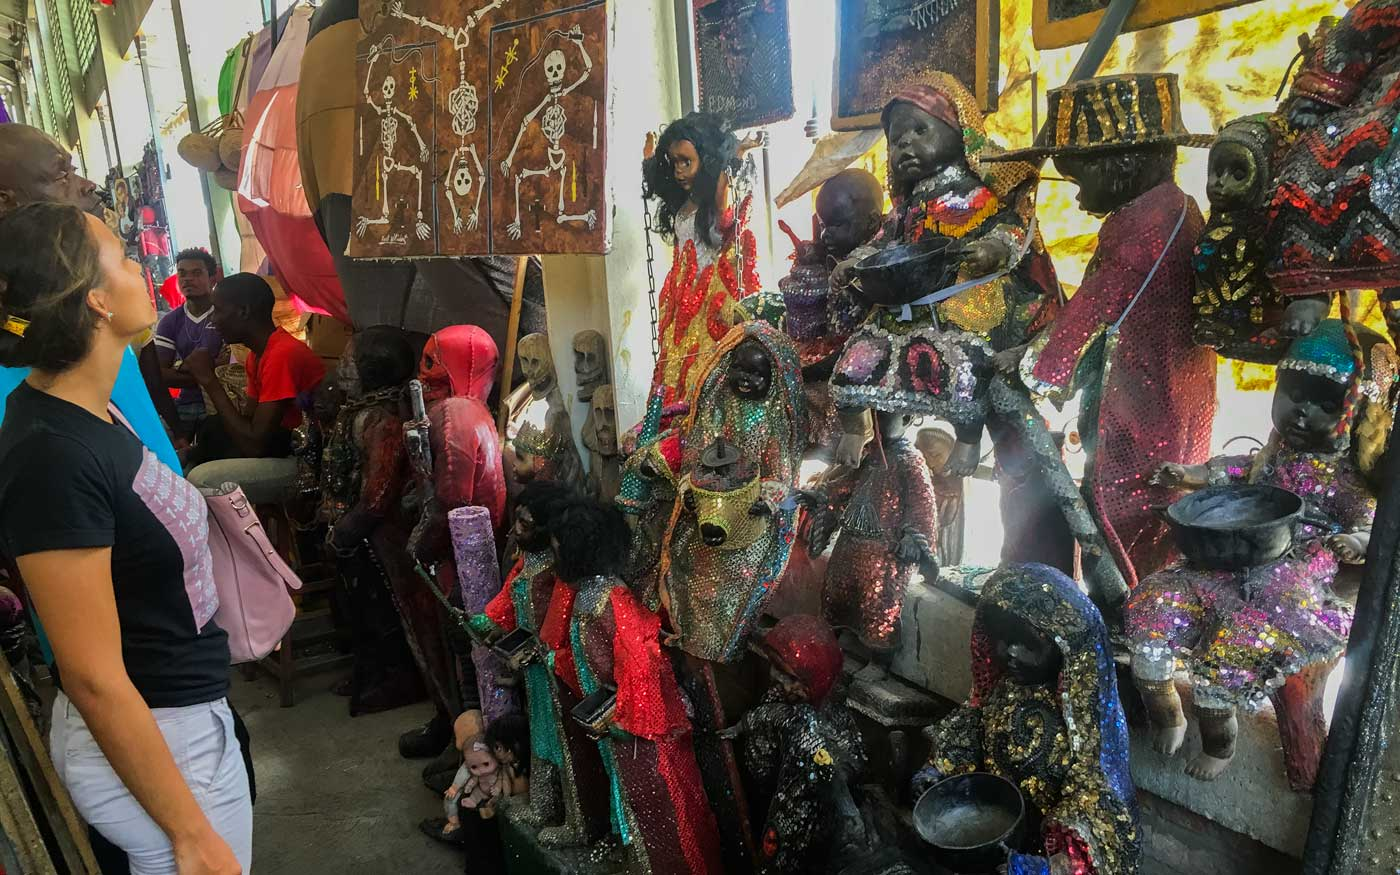 Vodou section at Marche en Fer - Port-au-Prince's Iron Market